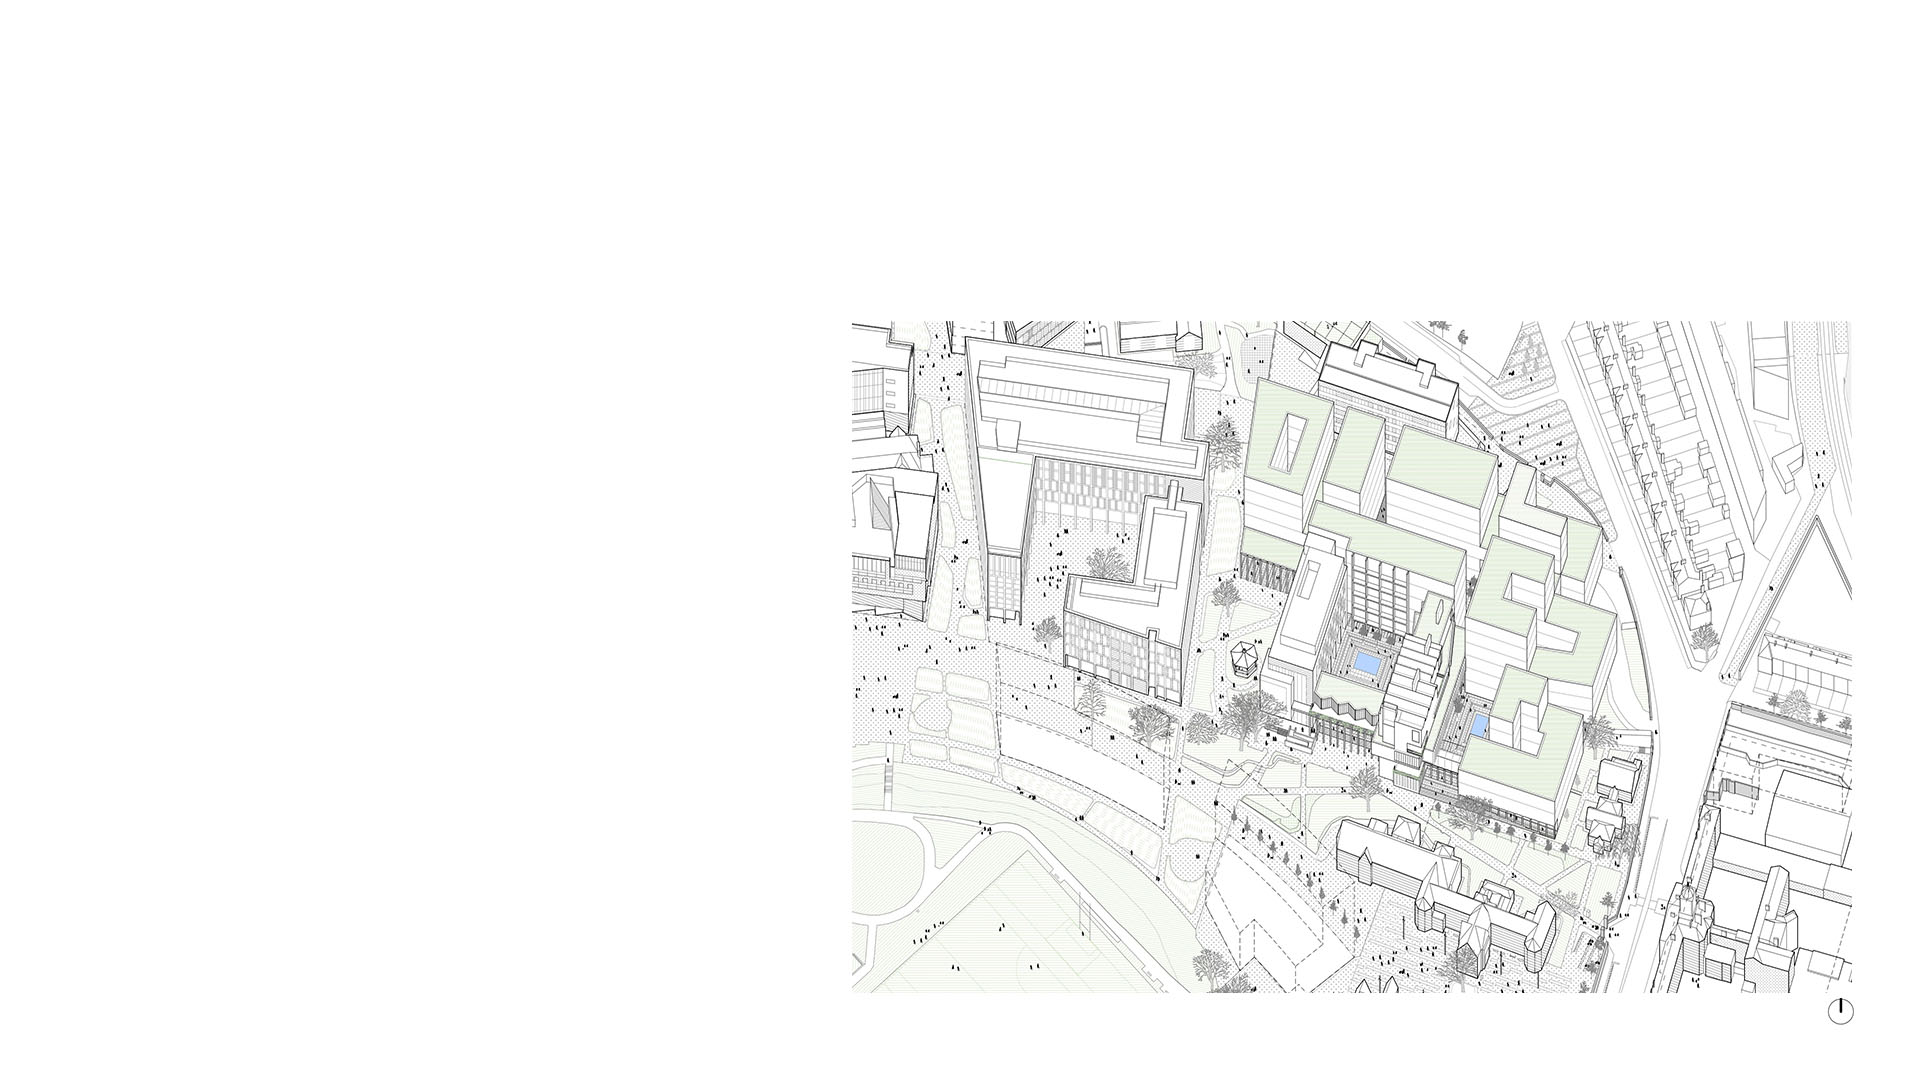 Axonometric of proposals for new FOCAS building at Technical University Dublin by Keith Williams Architects